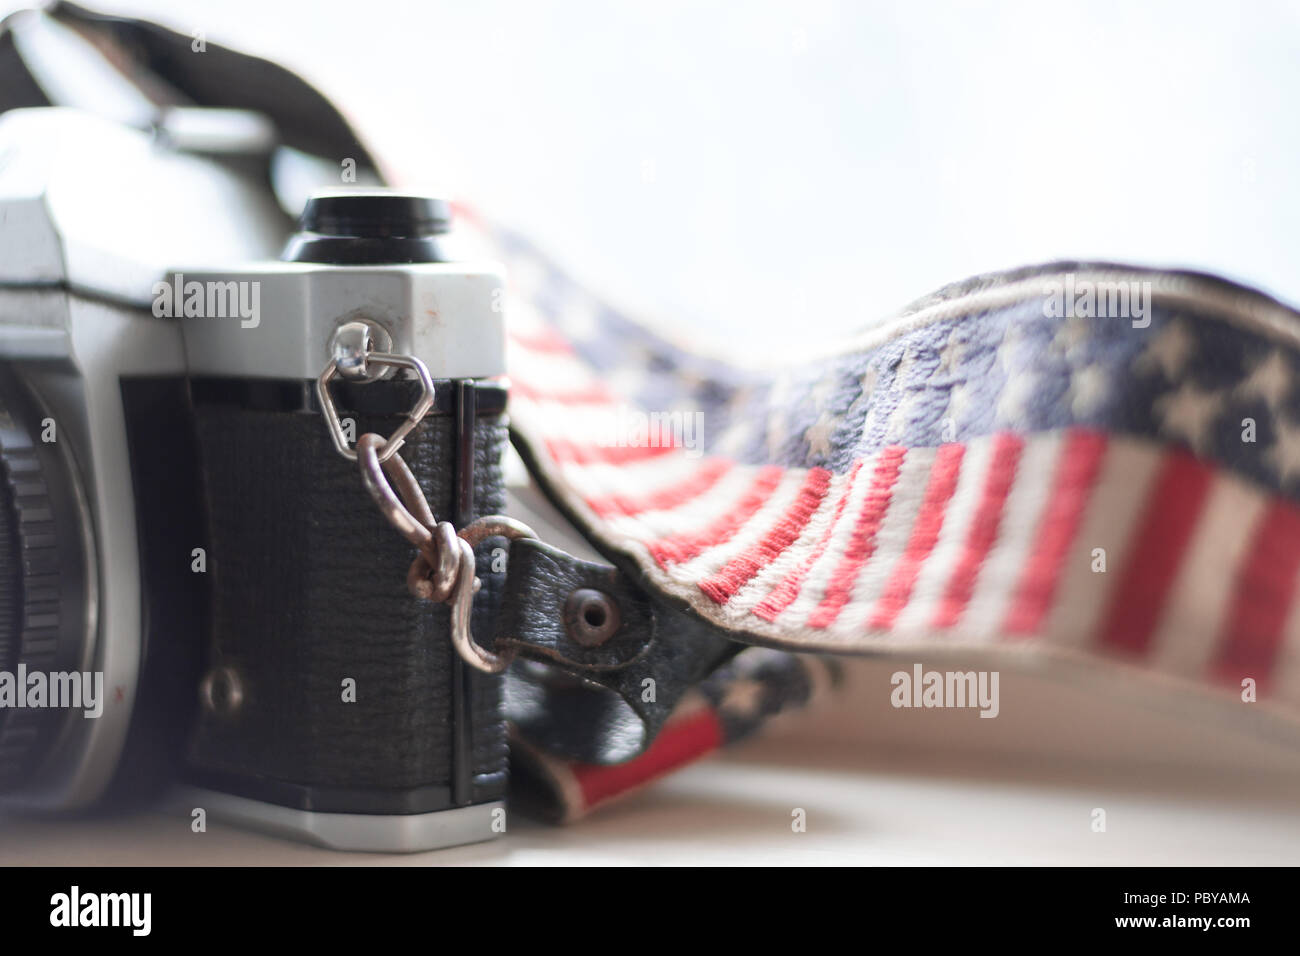 Close up of a film SLR camera and American flag strap on a white background. - Stock Image